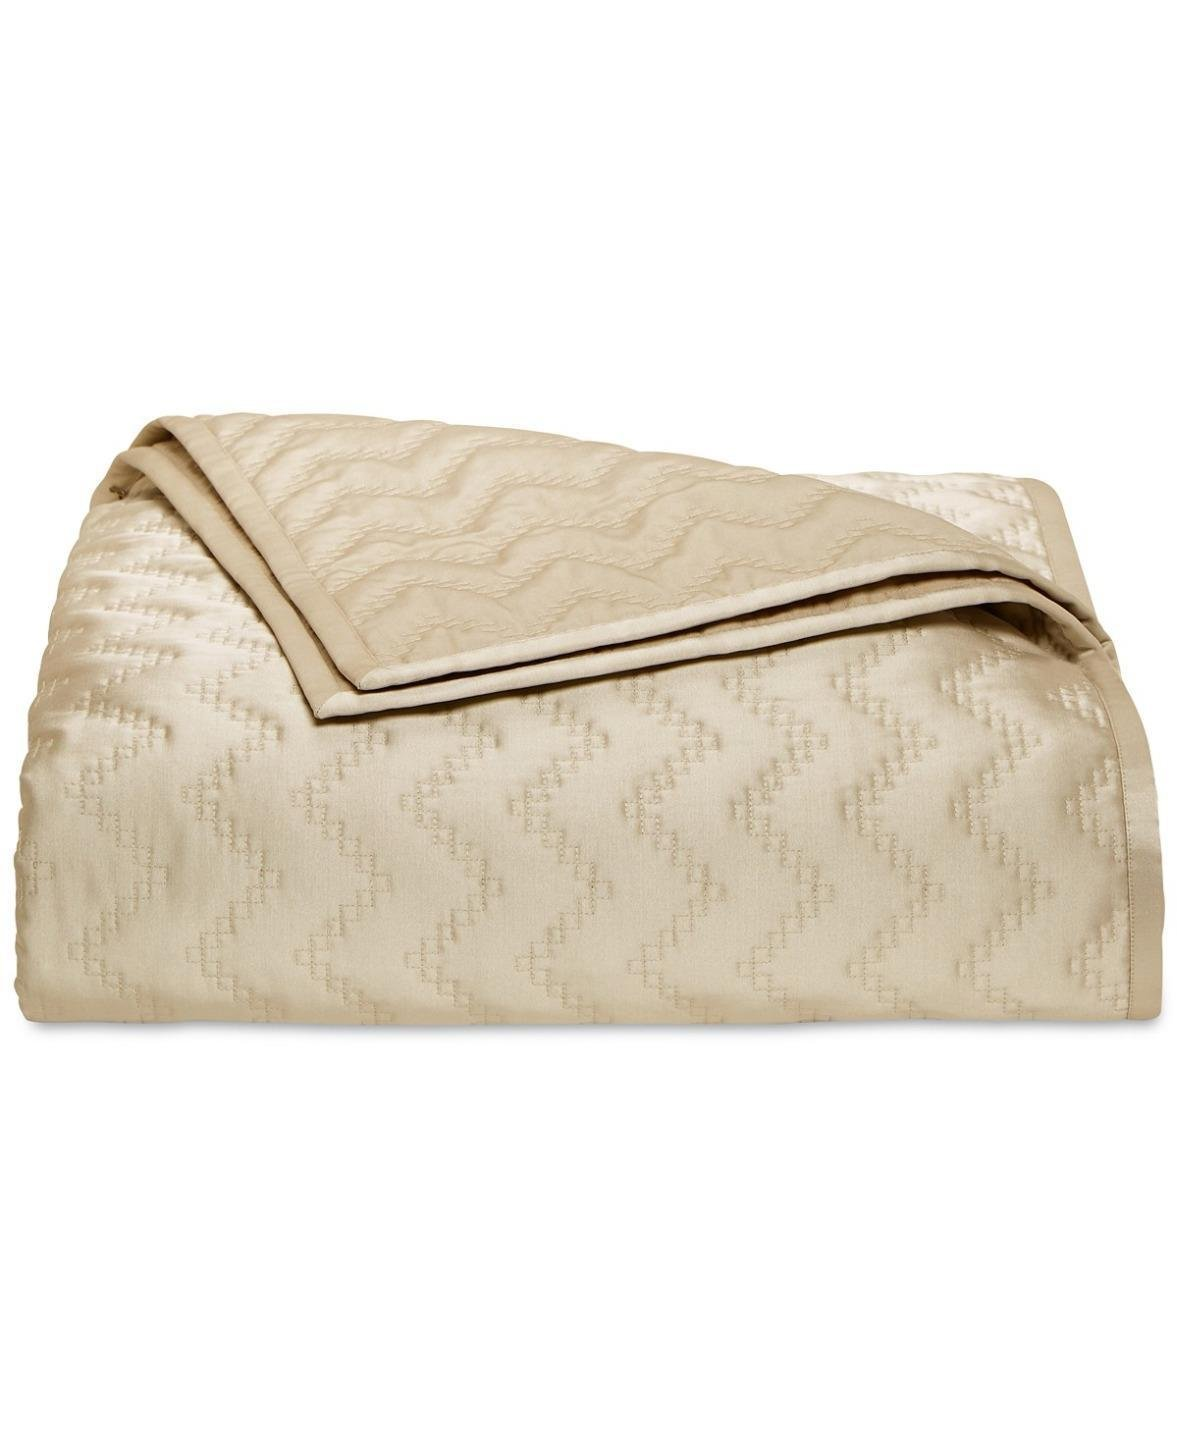 Hotel Collection Distressed Chevron QUEEN Quilted Coverlet